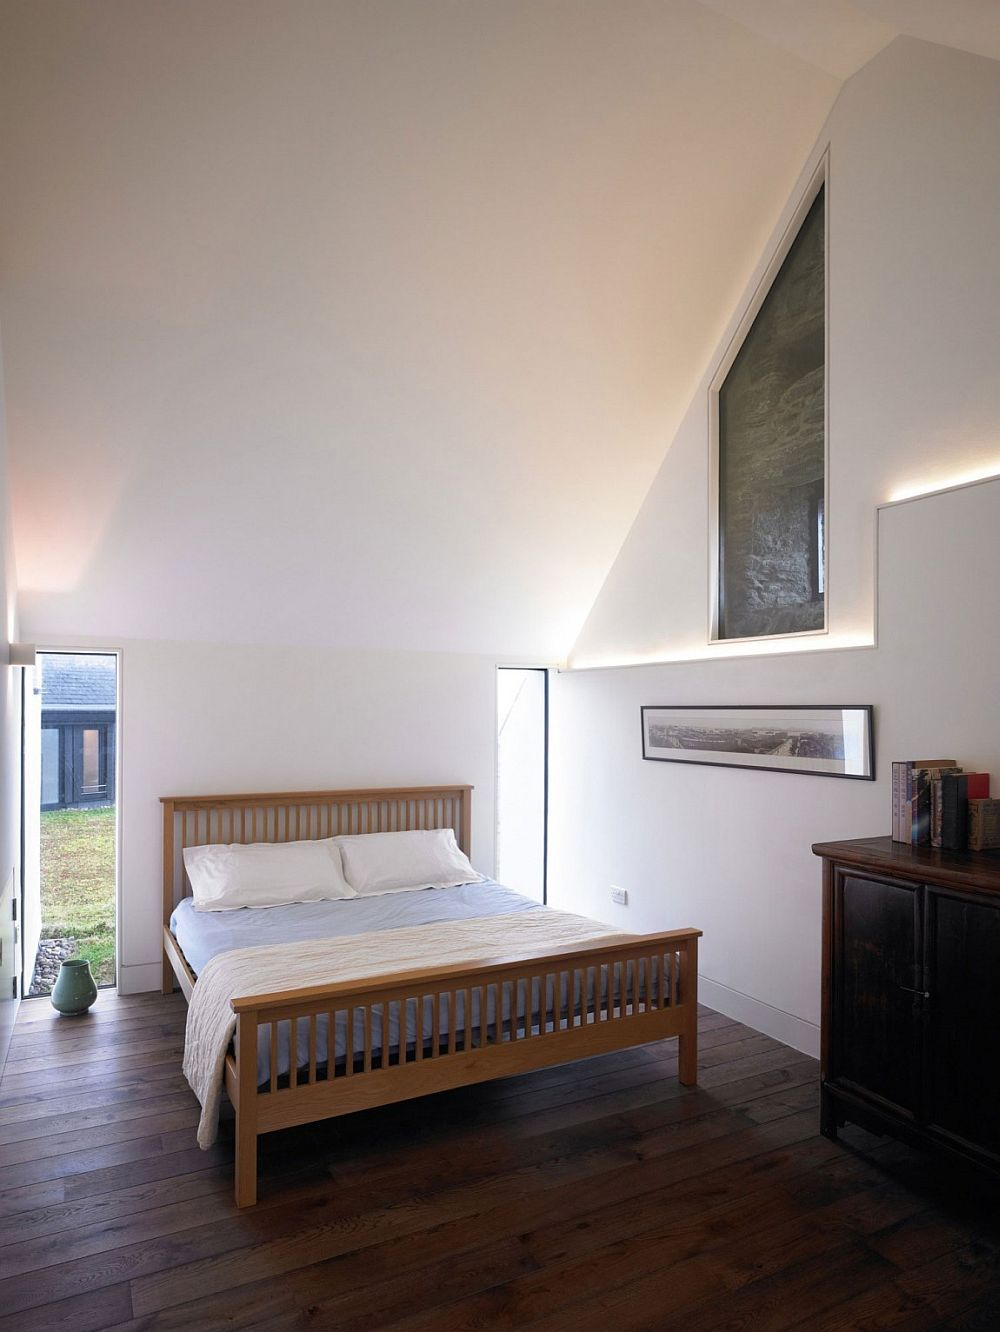 Two glass windows next to the bed usher in ample natural light